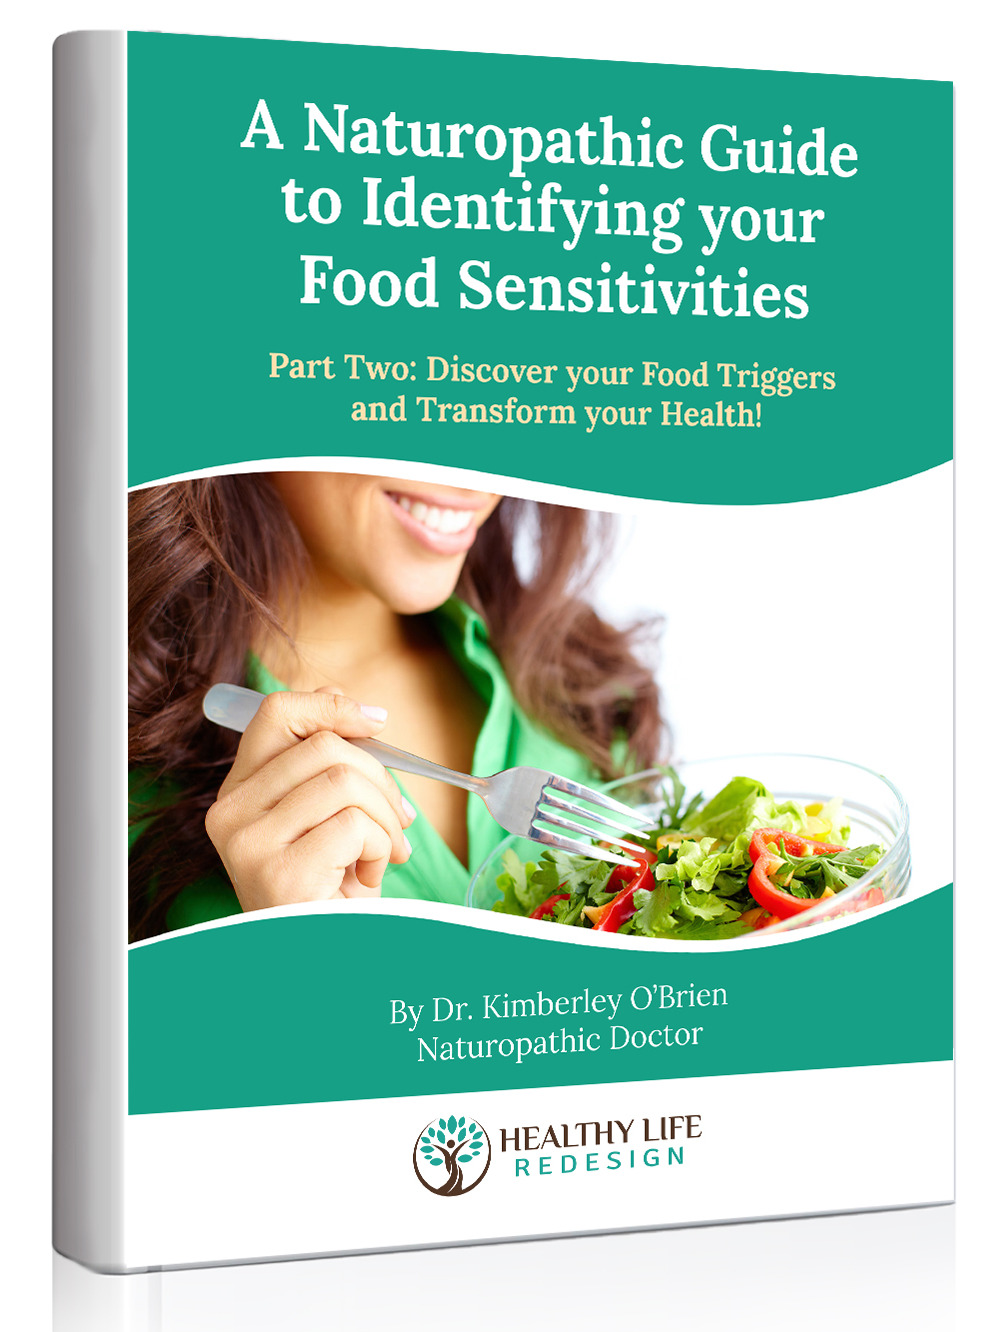 A naturopathic guide to identifying your food sensitivities